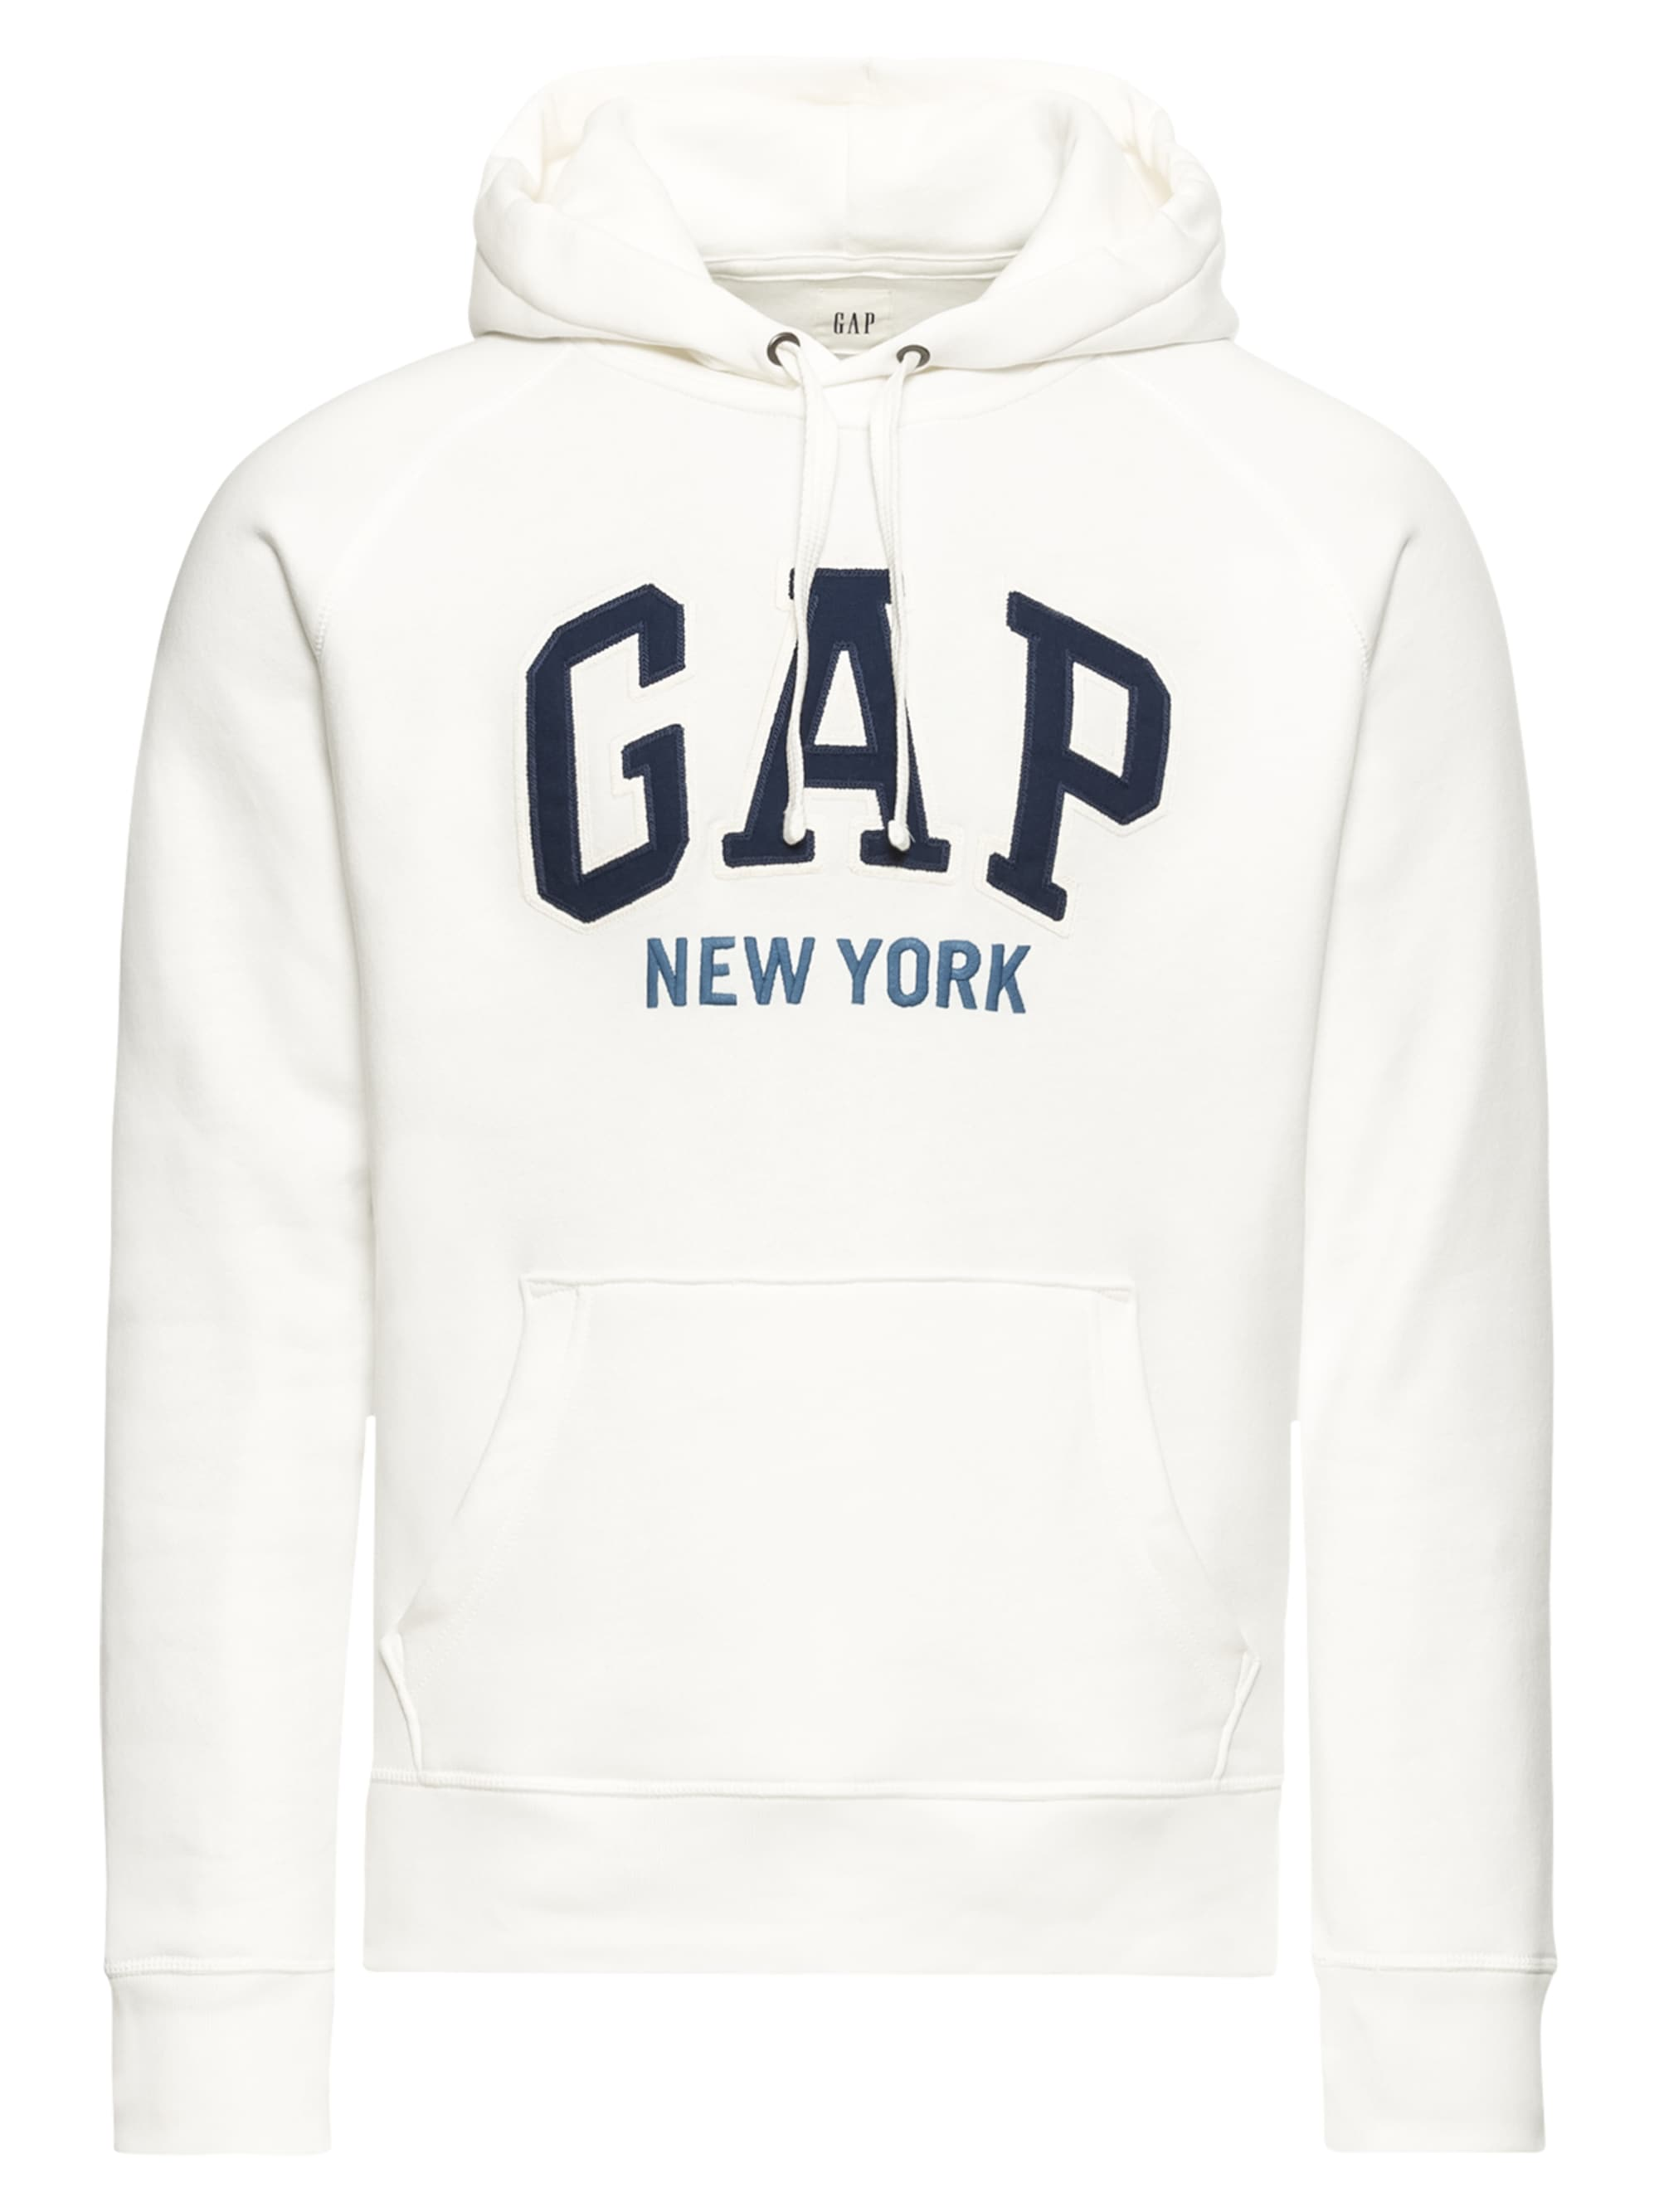 Sweatshirt ´NEW YORK CITY PO CLOUDY FT RE -LAUNCH´